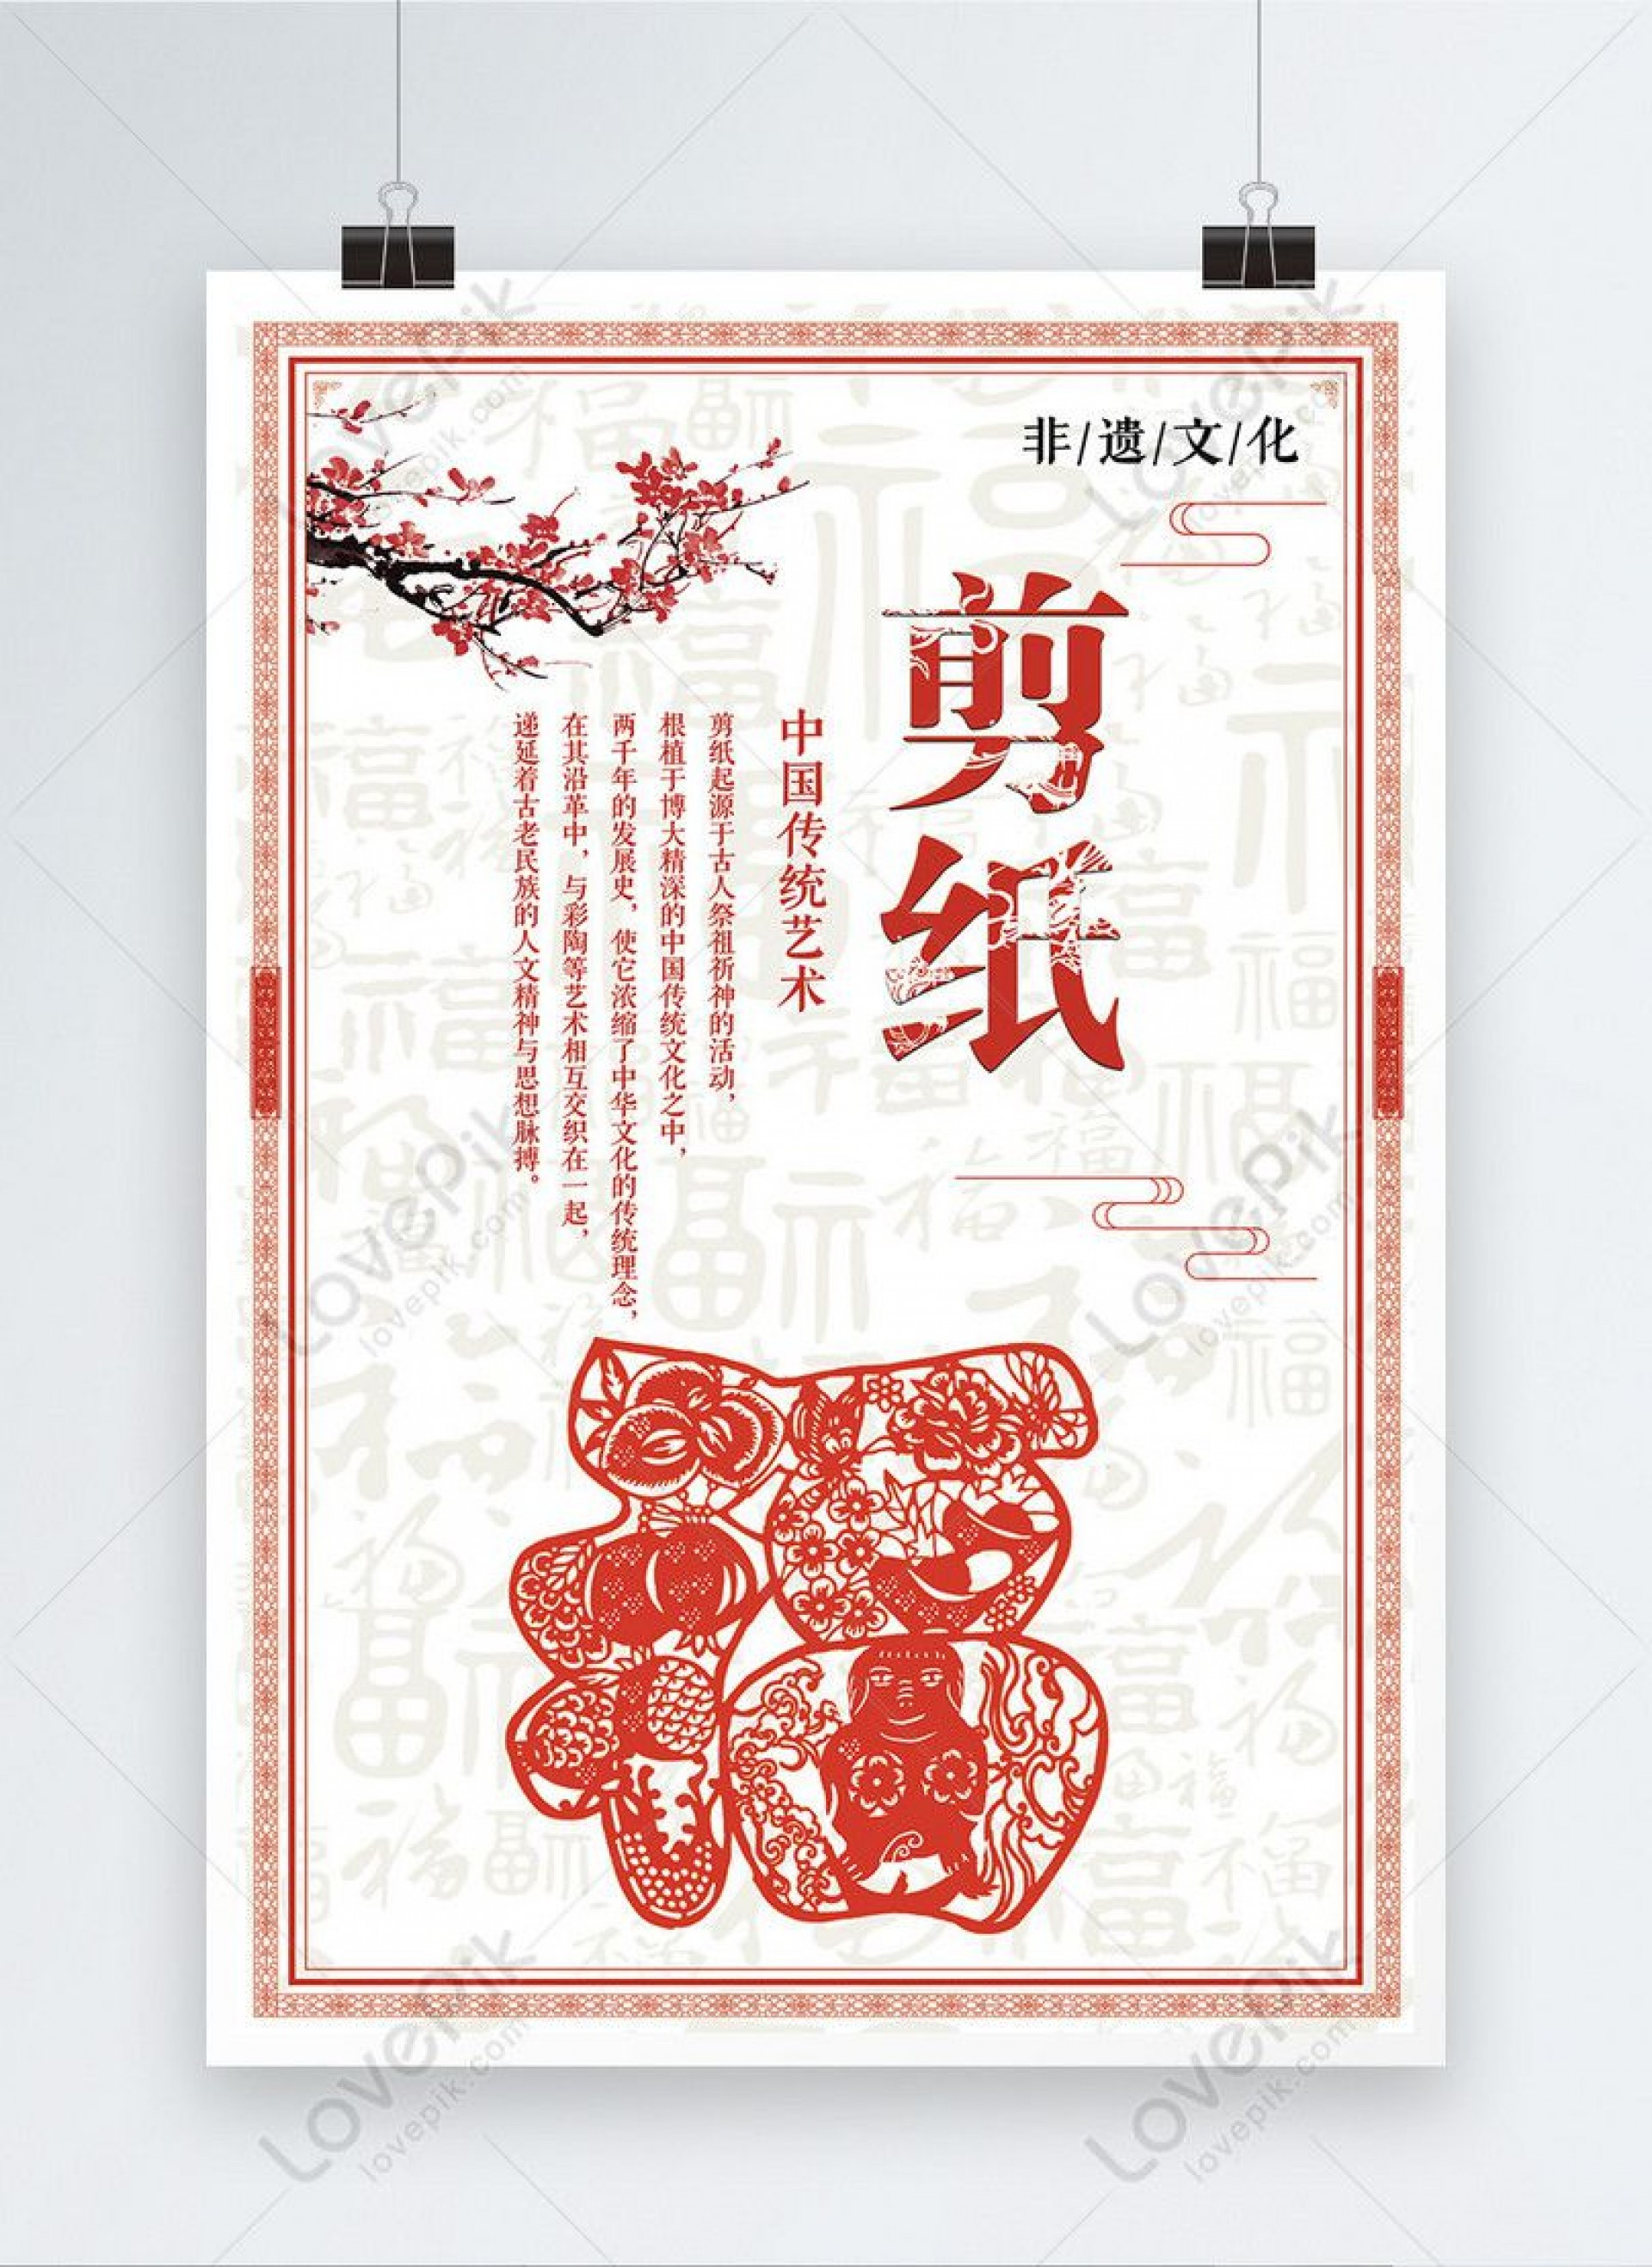 003 Fantastic Chinese Paper Cut Template Concept  Templates1920